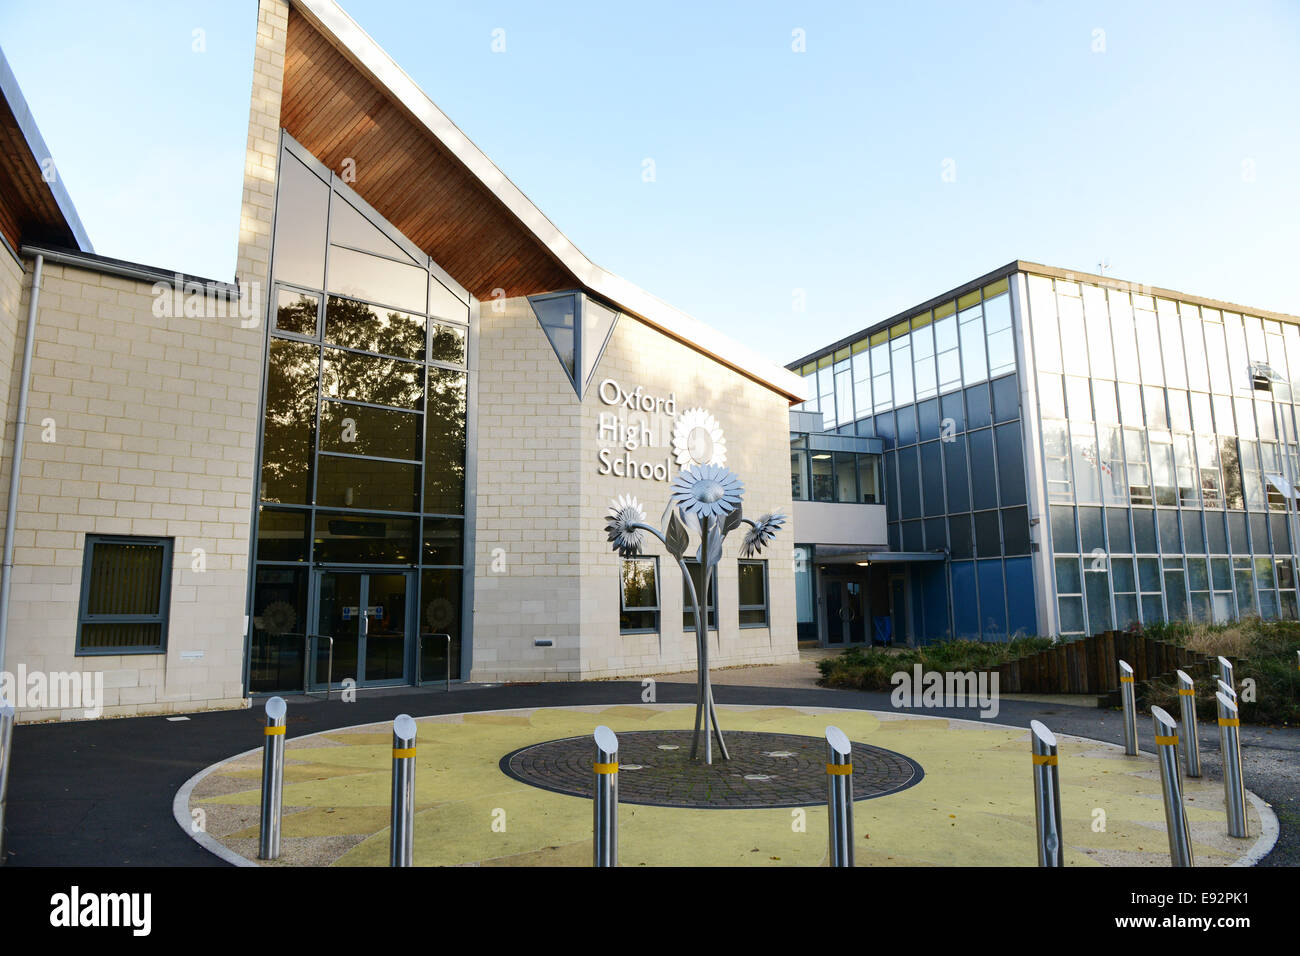 Oxford High School for Girls, Belbroughton Rd GV Pic Richard Cave 17.10.14 Photo Stock